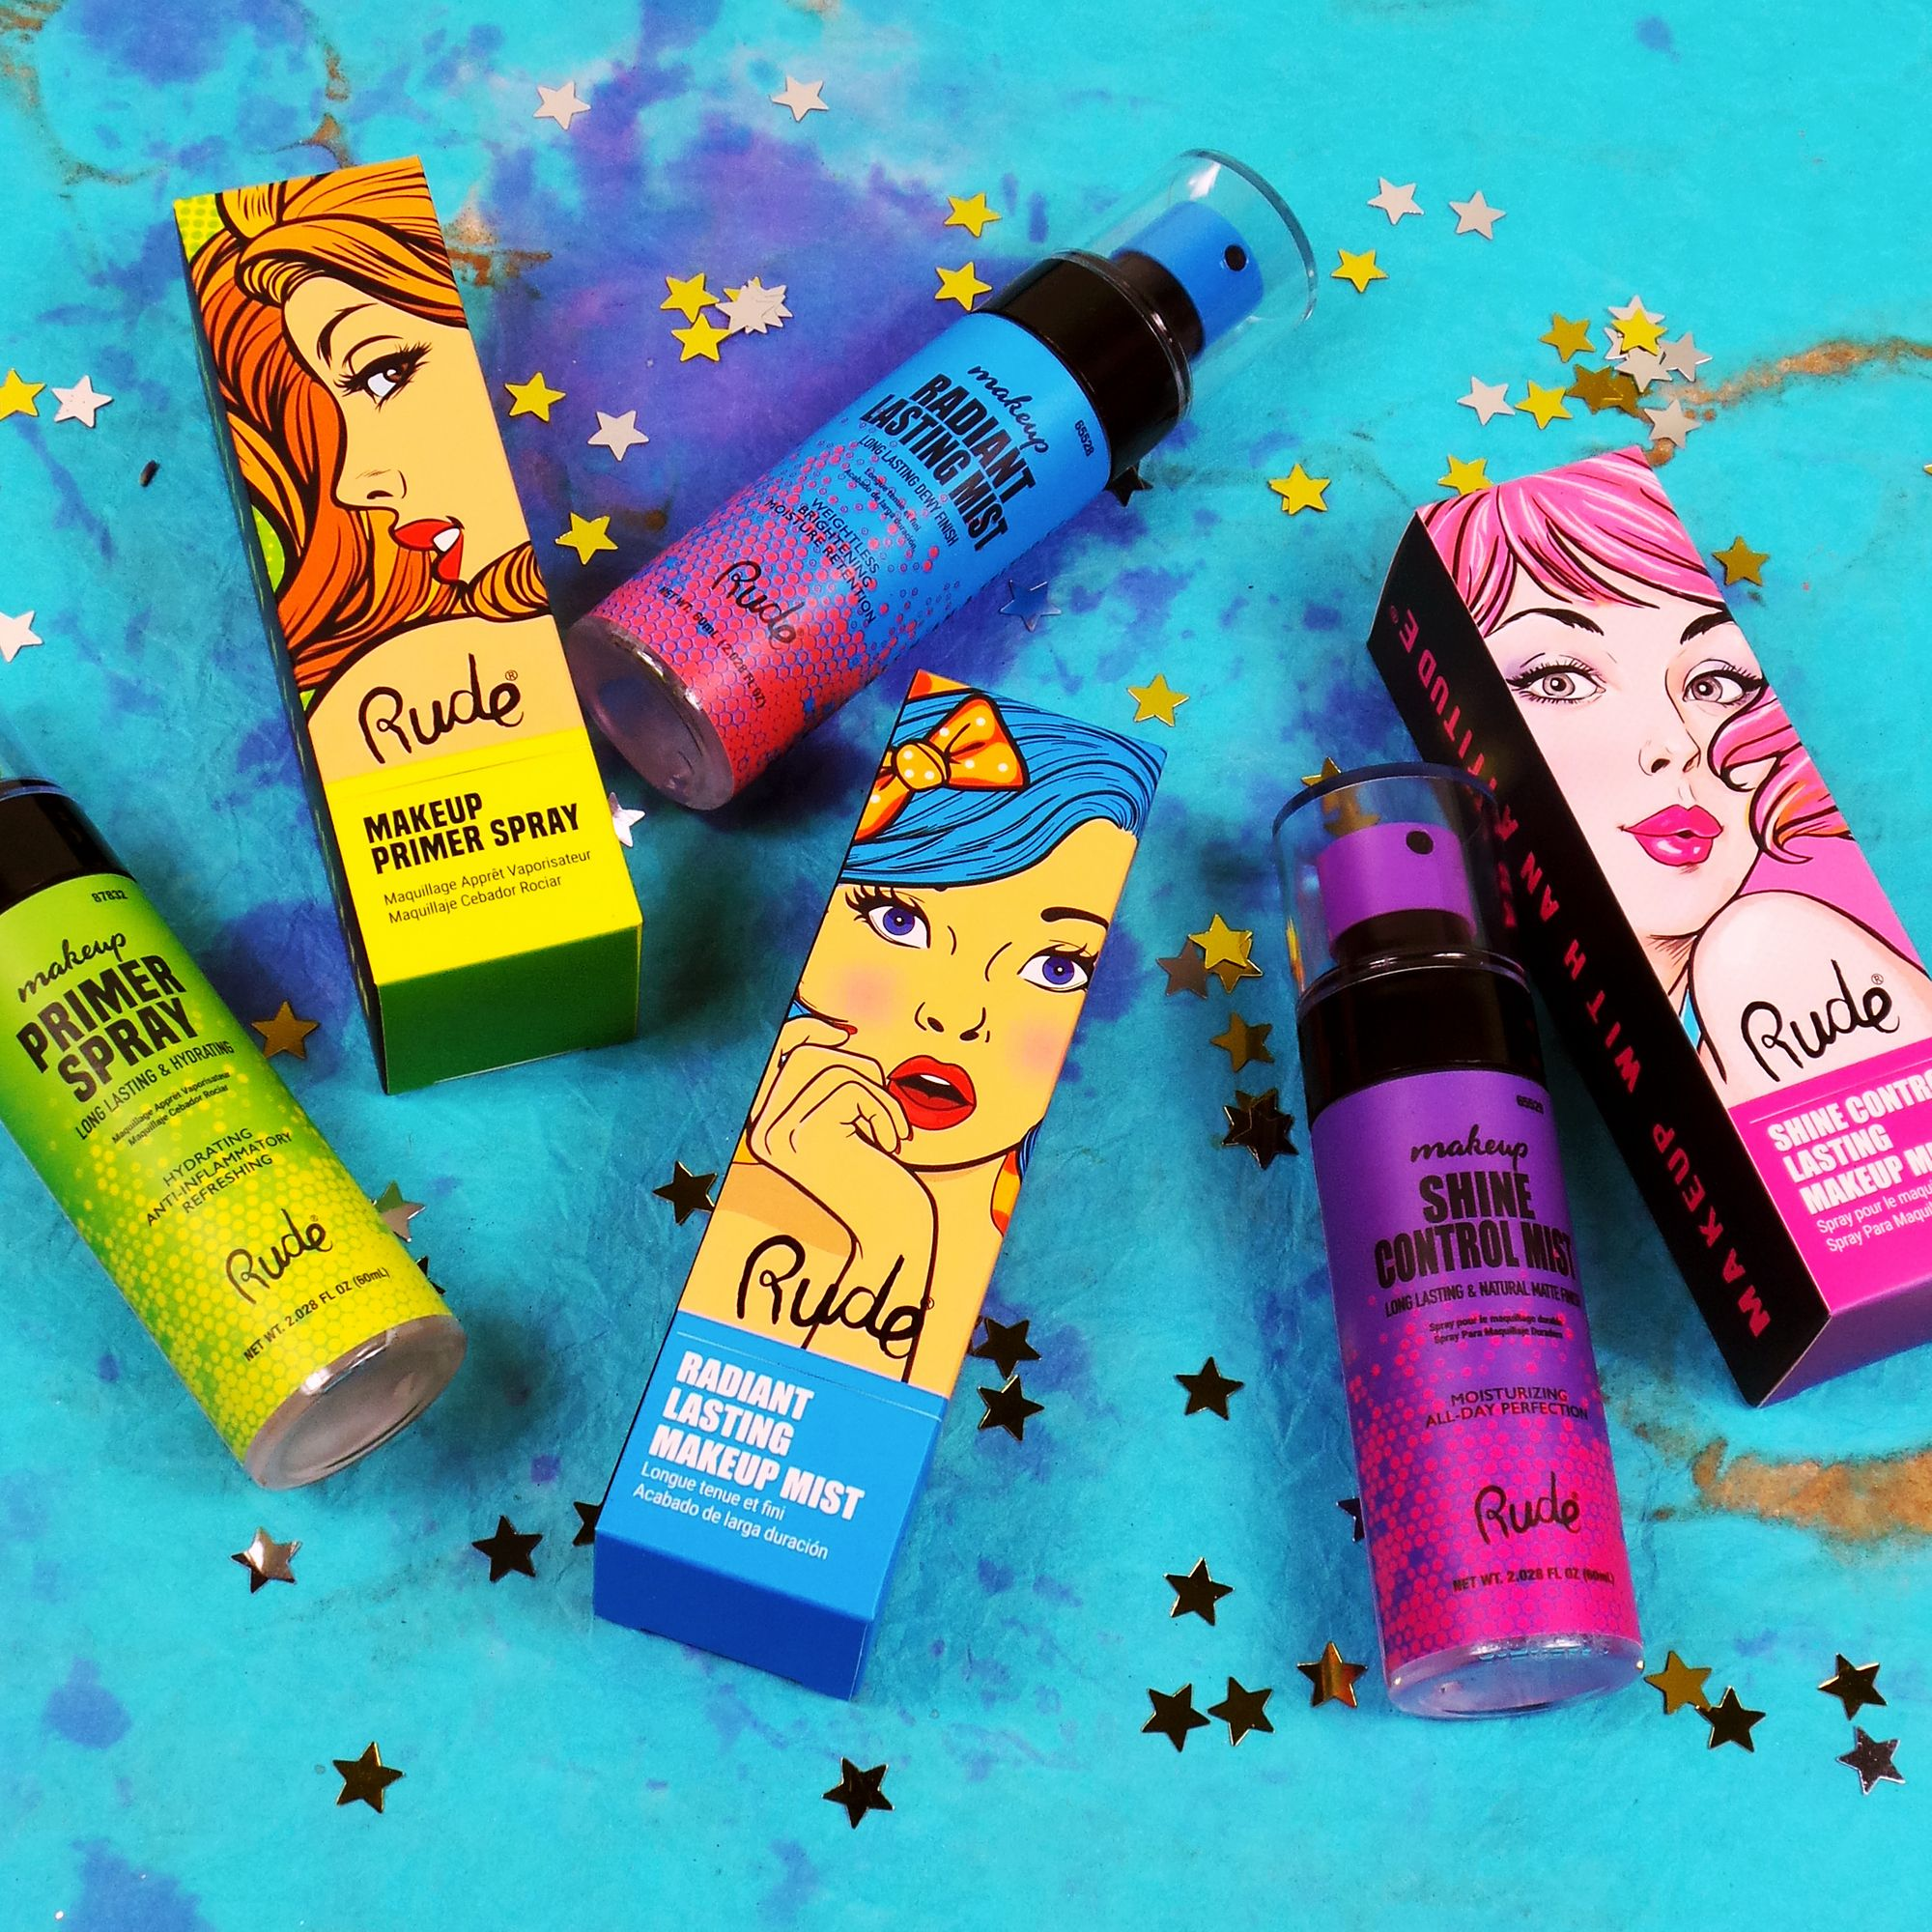 Looking for a new setting spray? 😍 We have 3 amazing